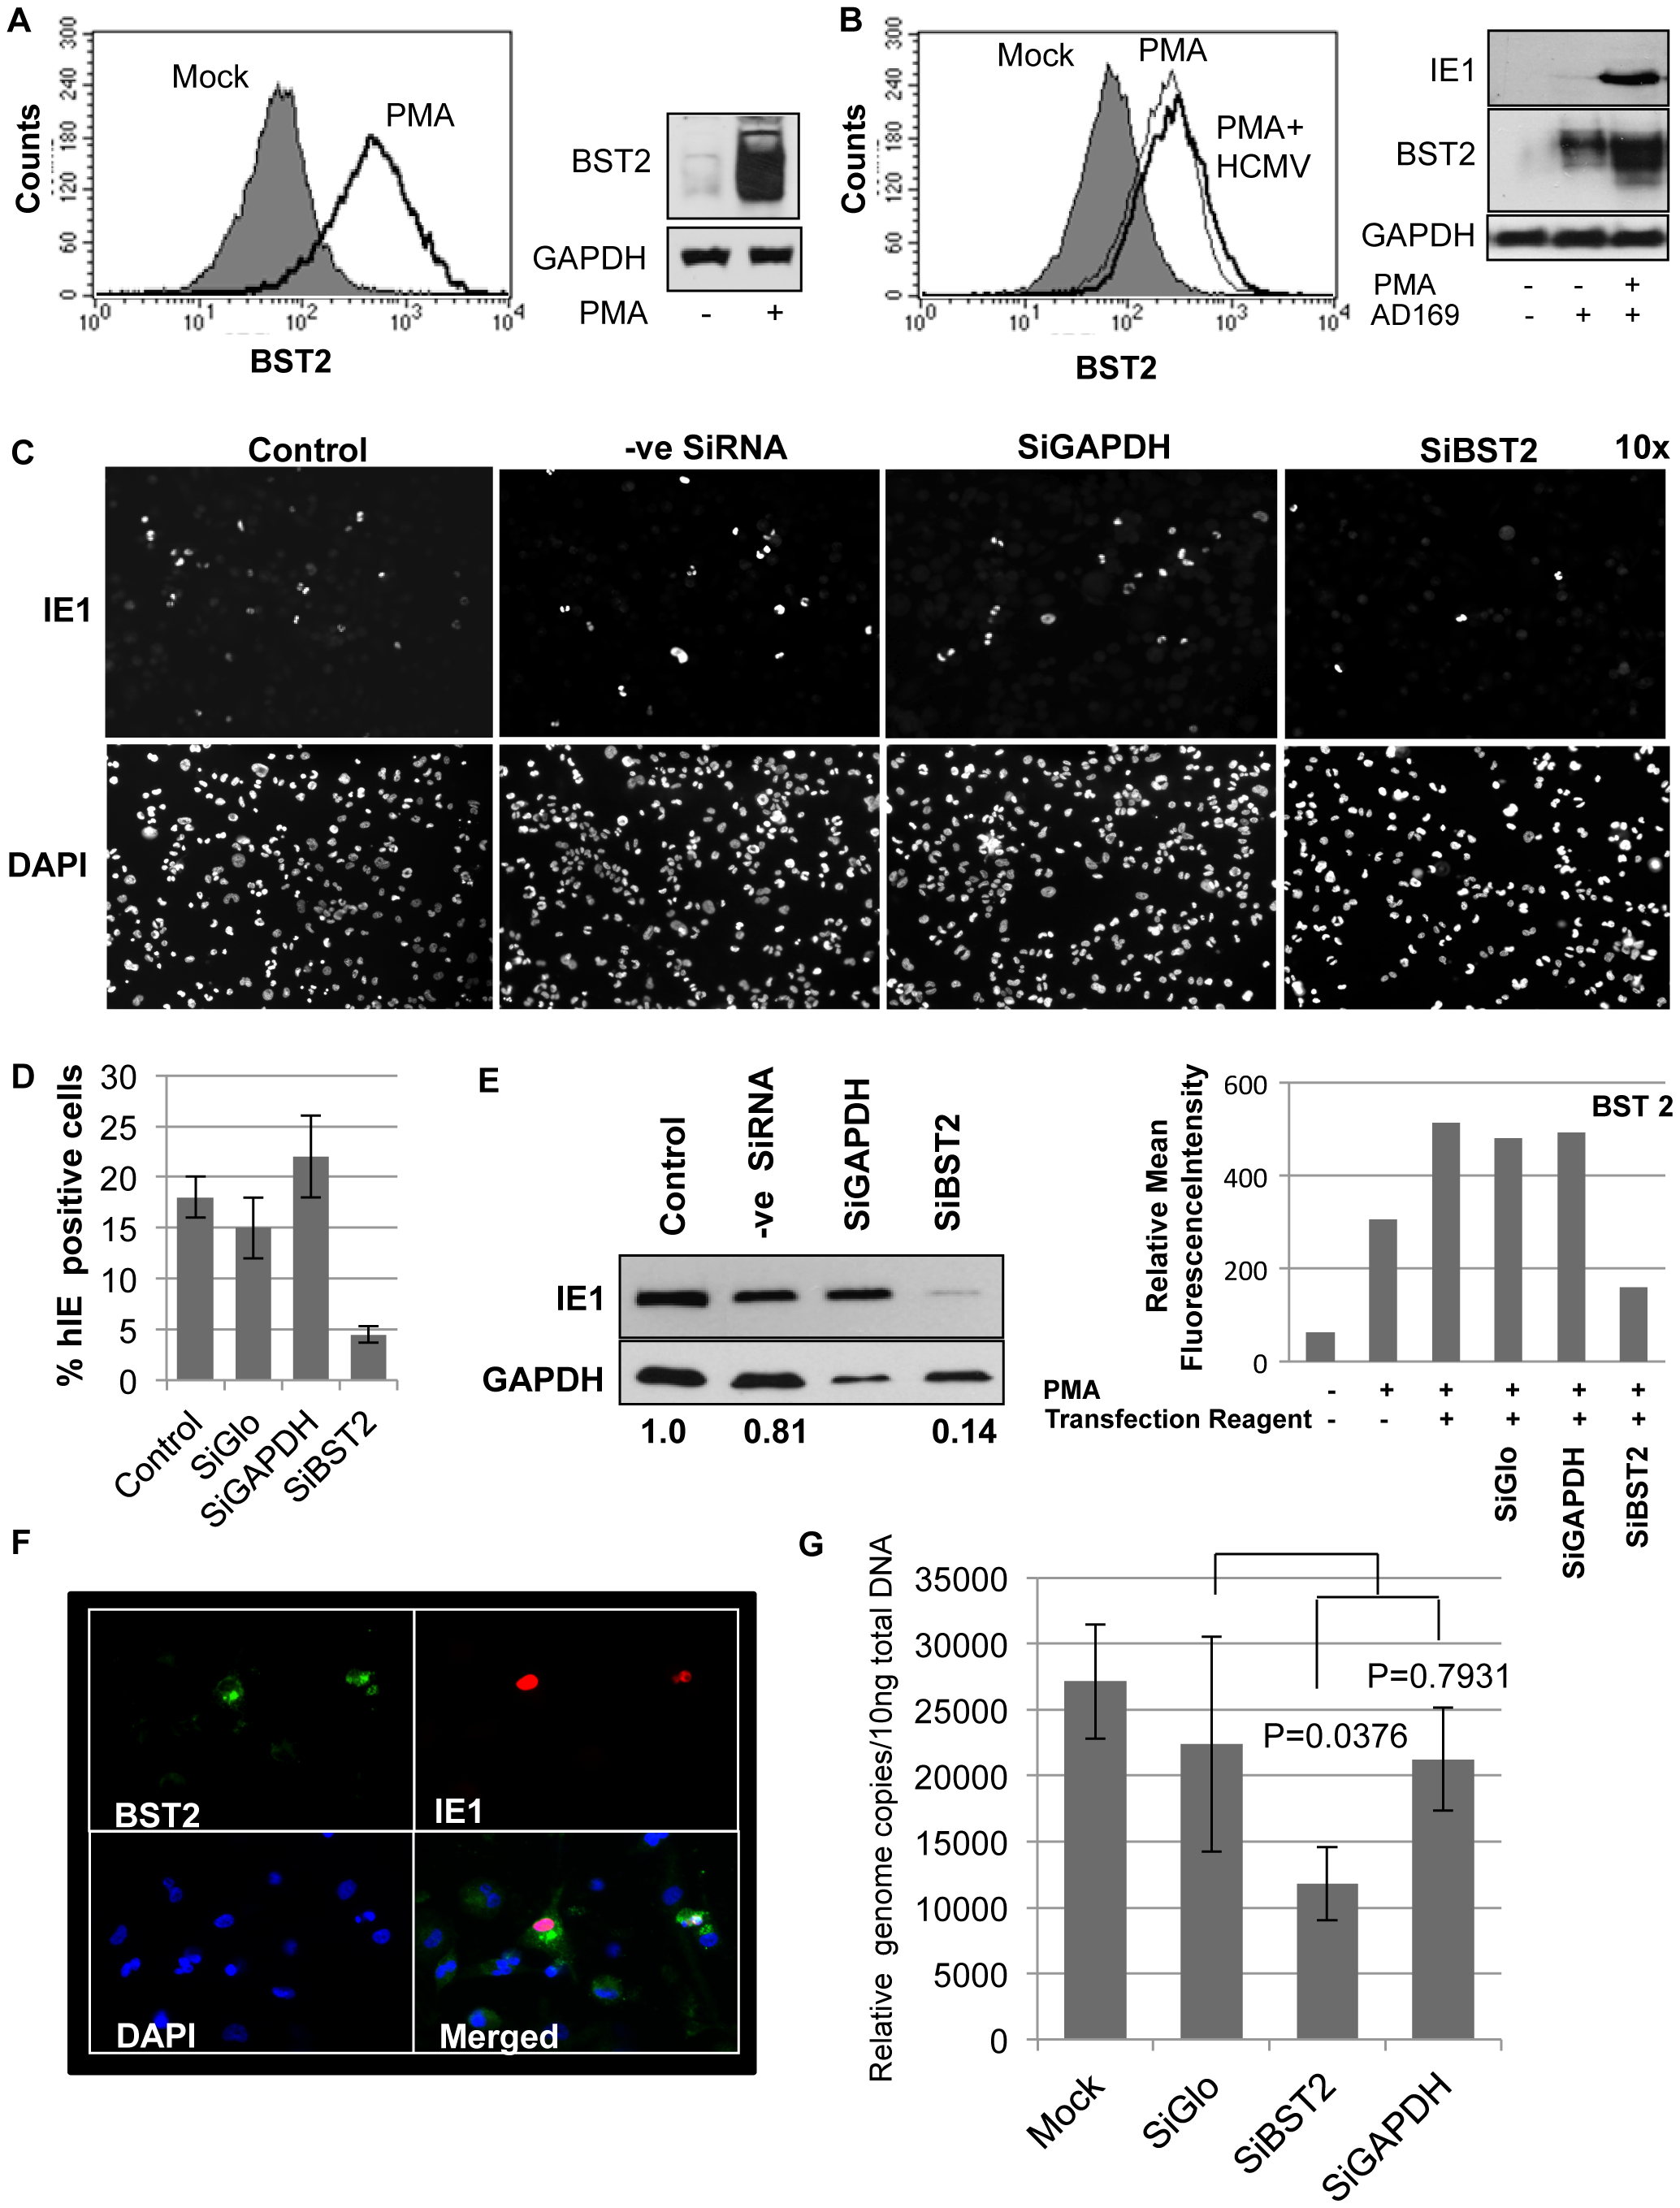 Infection of THP-1 cells with HCMV is BST2-dependent.